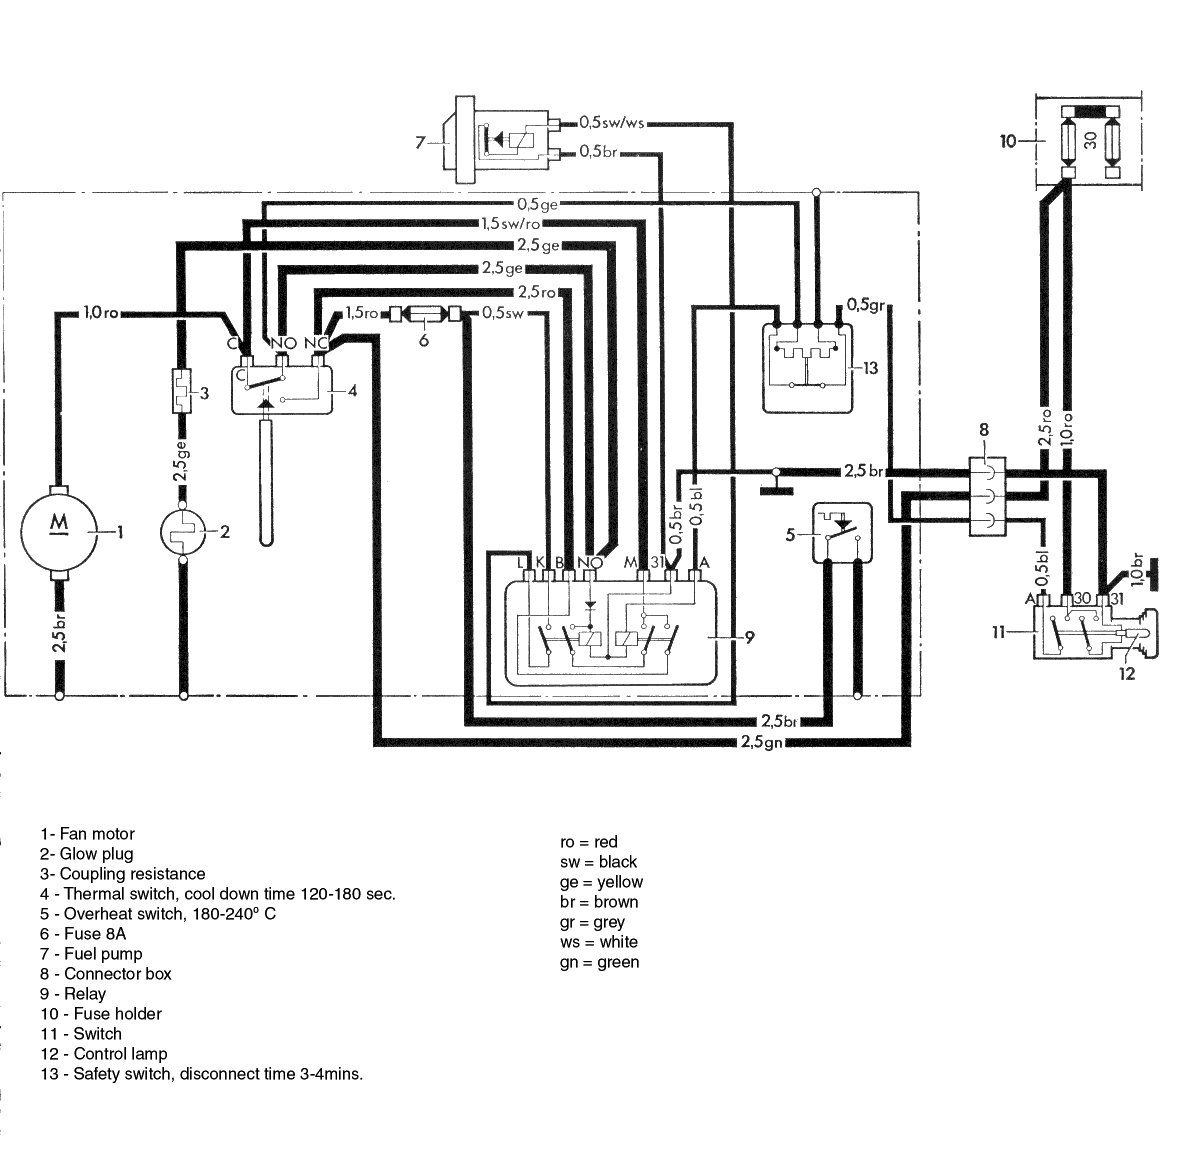 BN2_wiring thesamba com vw eberspacher gas heater installation manual bn gas heater wiring diagram at n-0.co